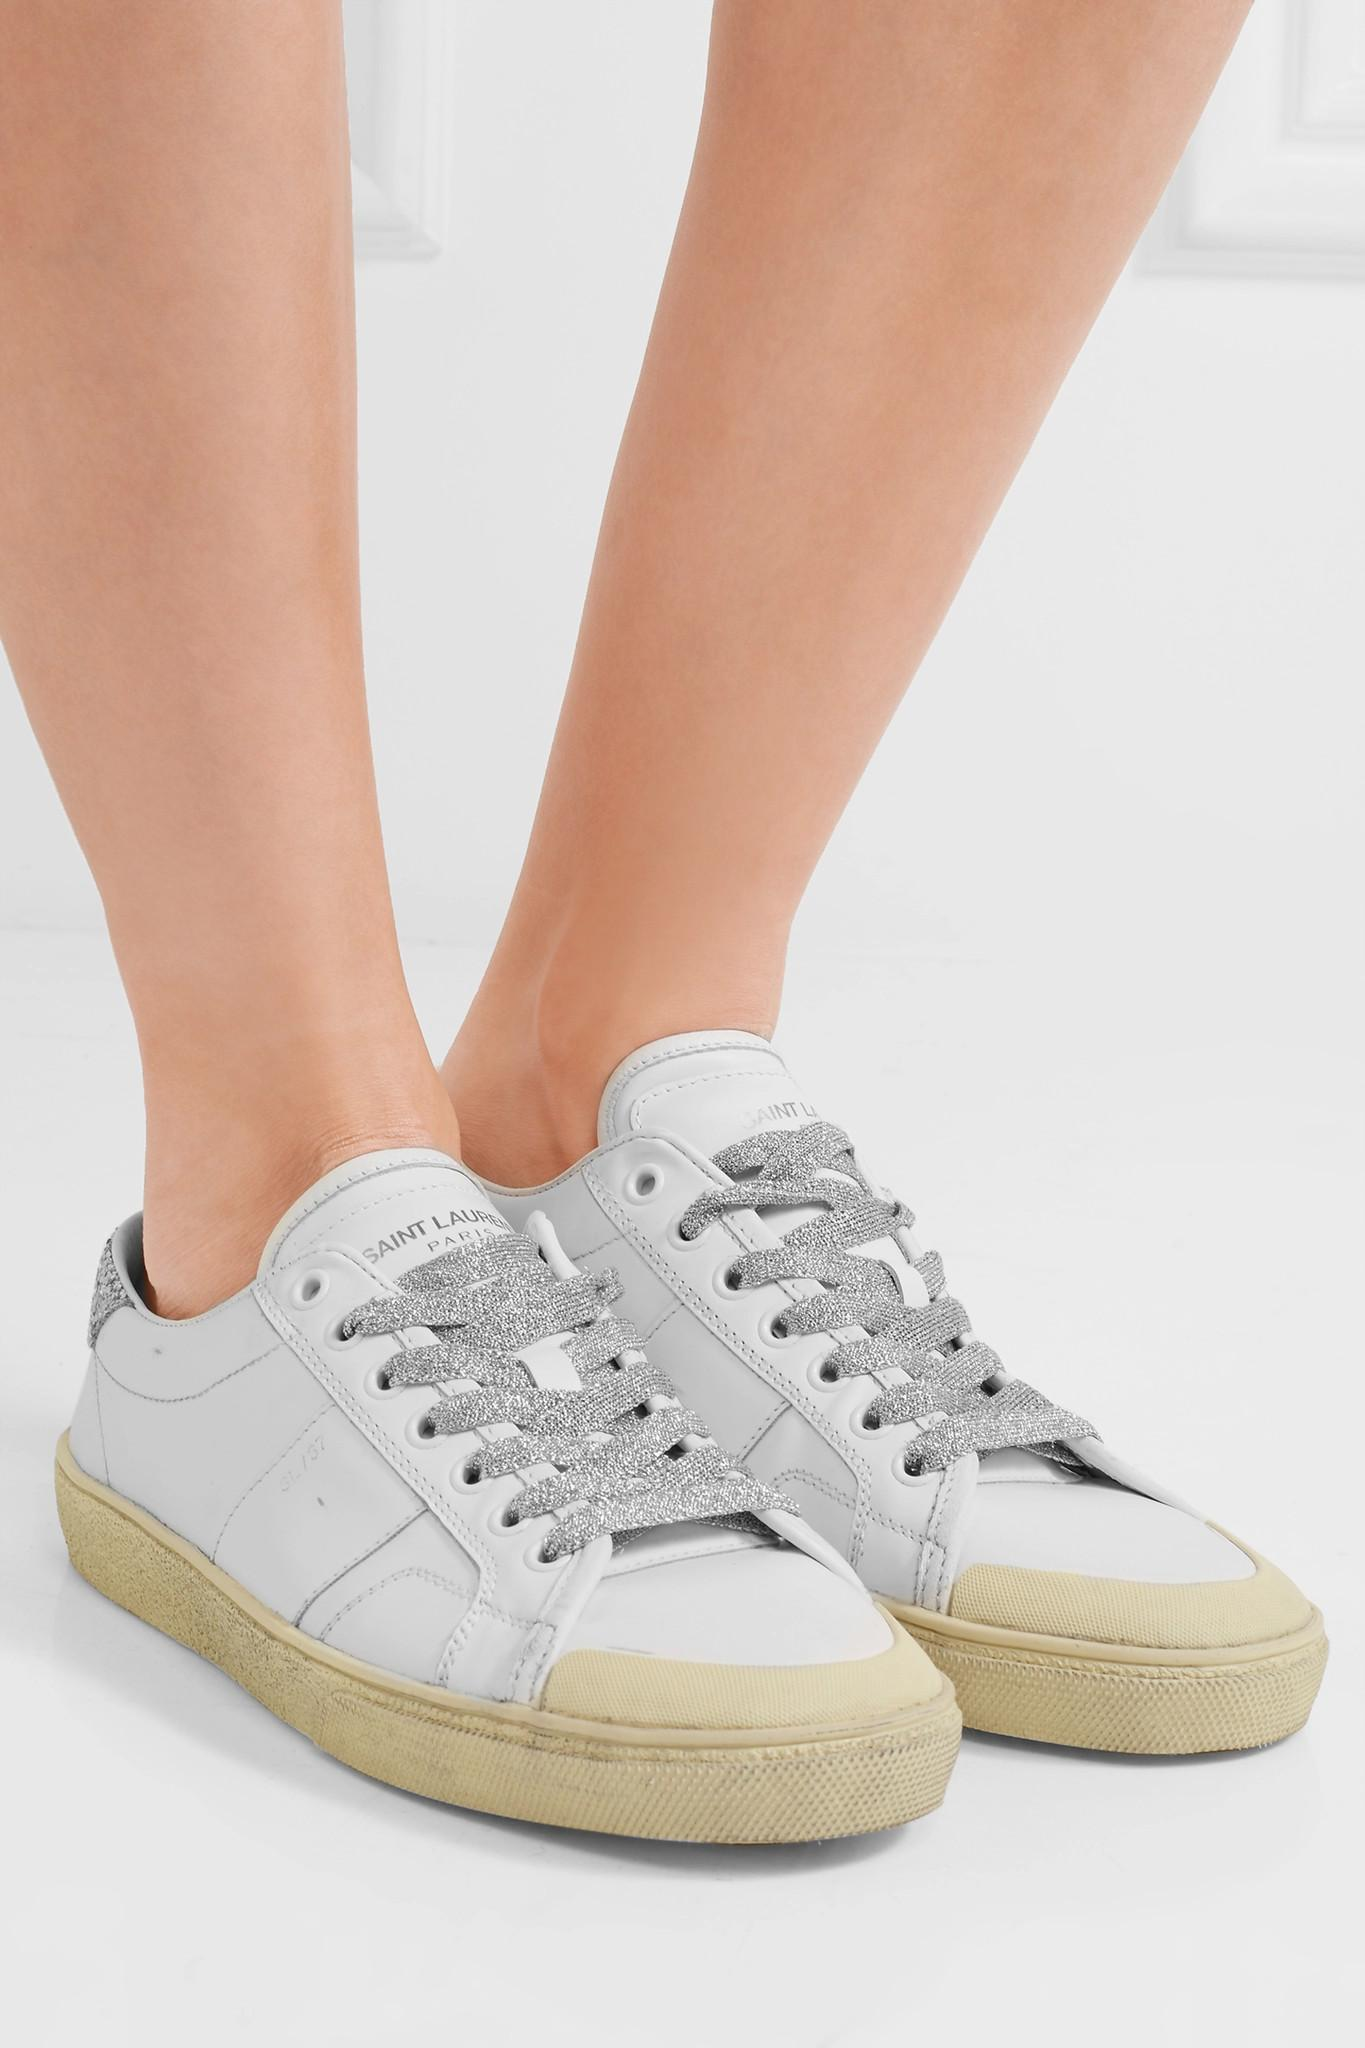 saint laurent court classic glitter trimmed leather sneakers in white lyst. Black Bedroom Furniture Sets. Home Design Ideas